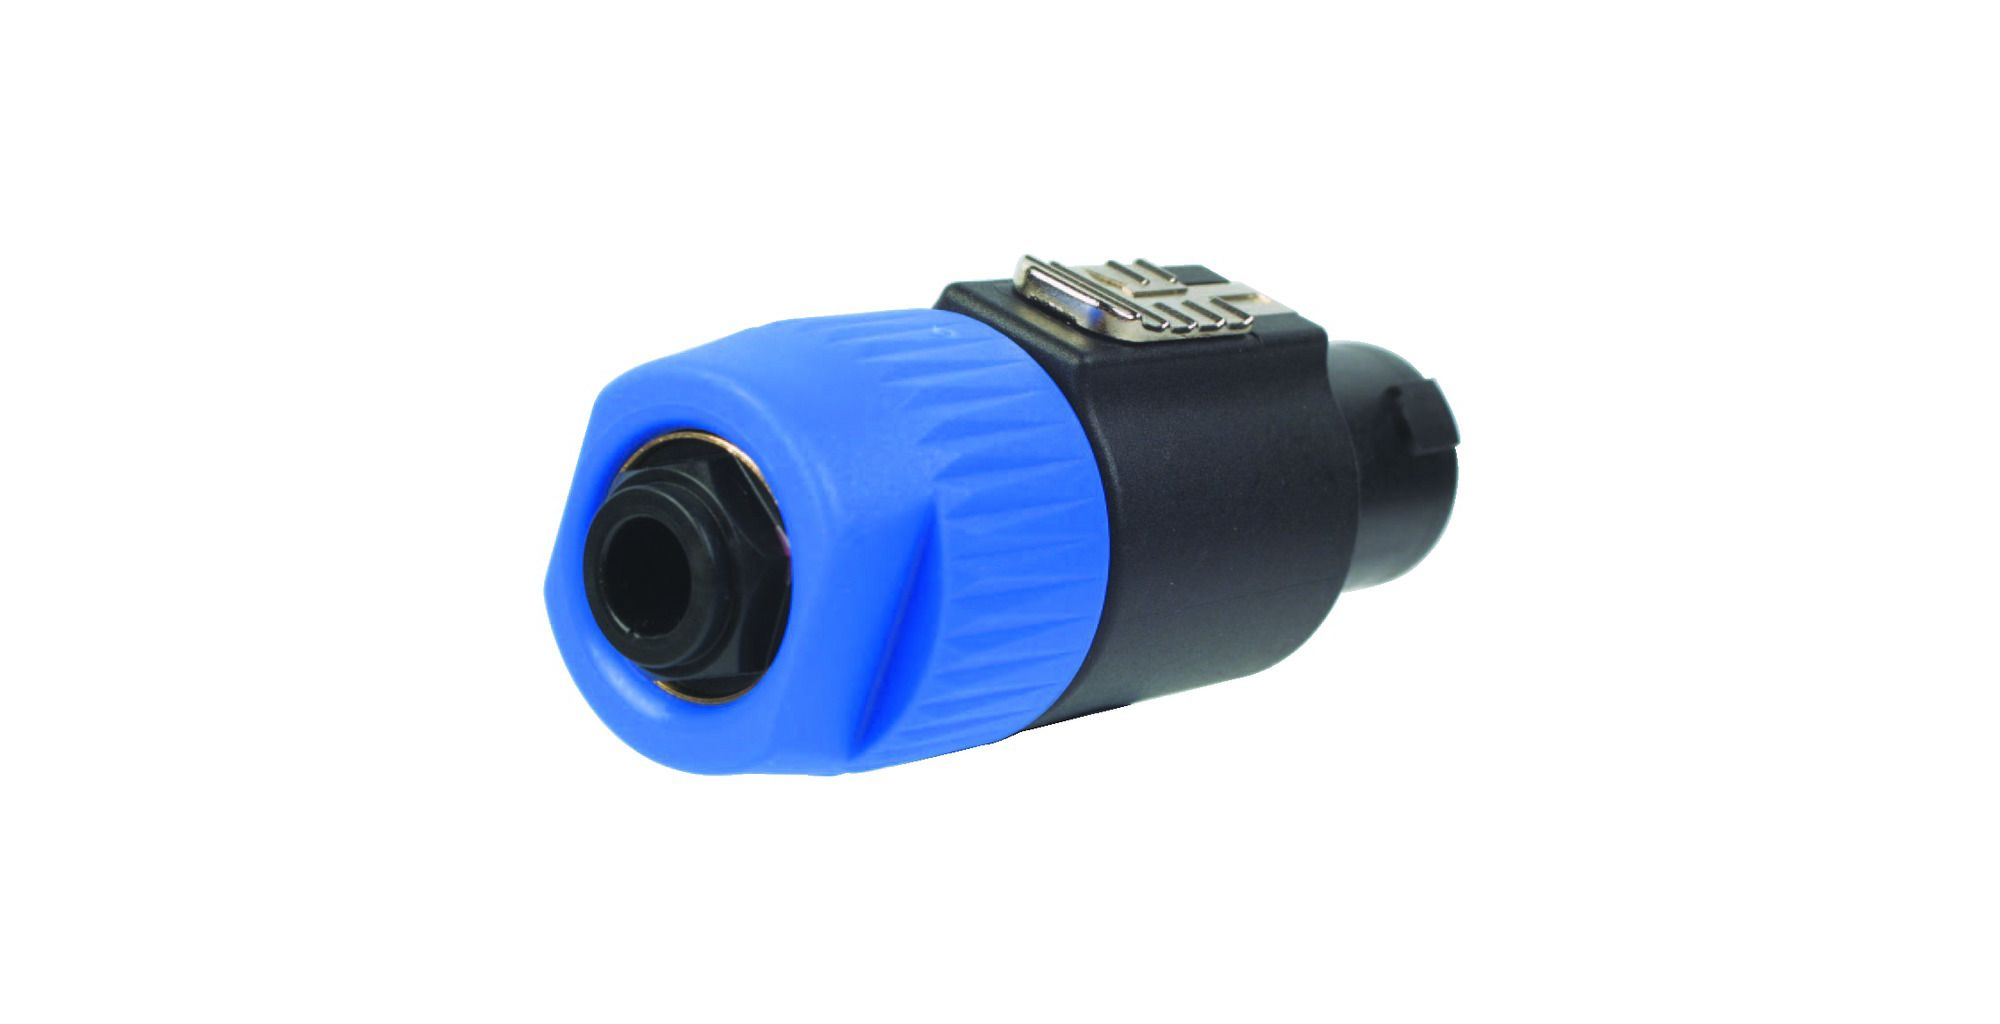 Speakon to 6.35mm Mono Jack Adaptor